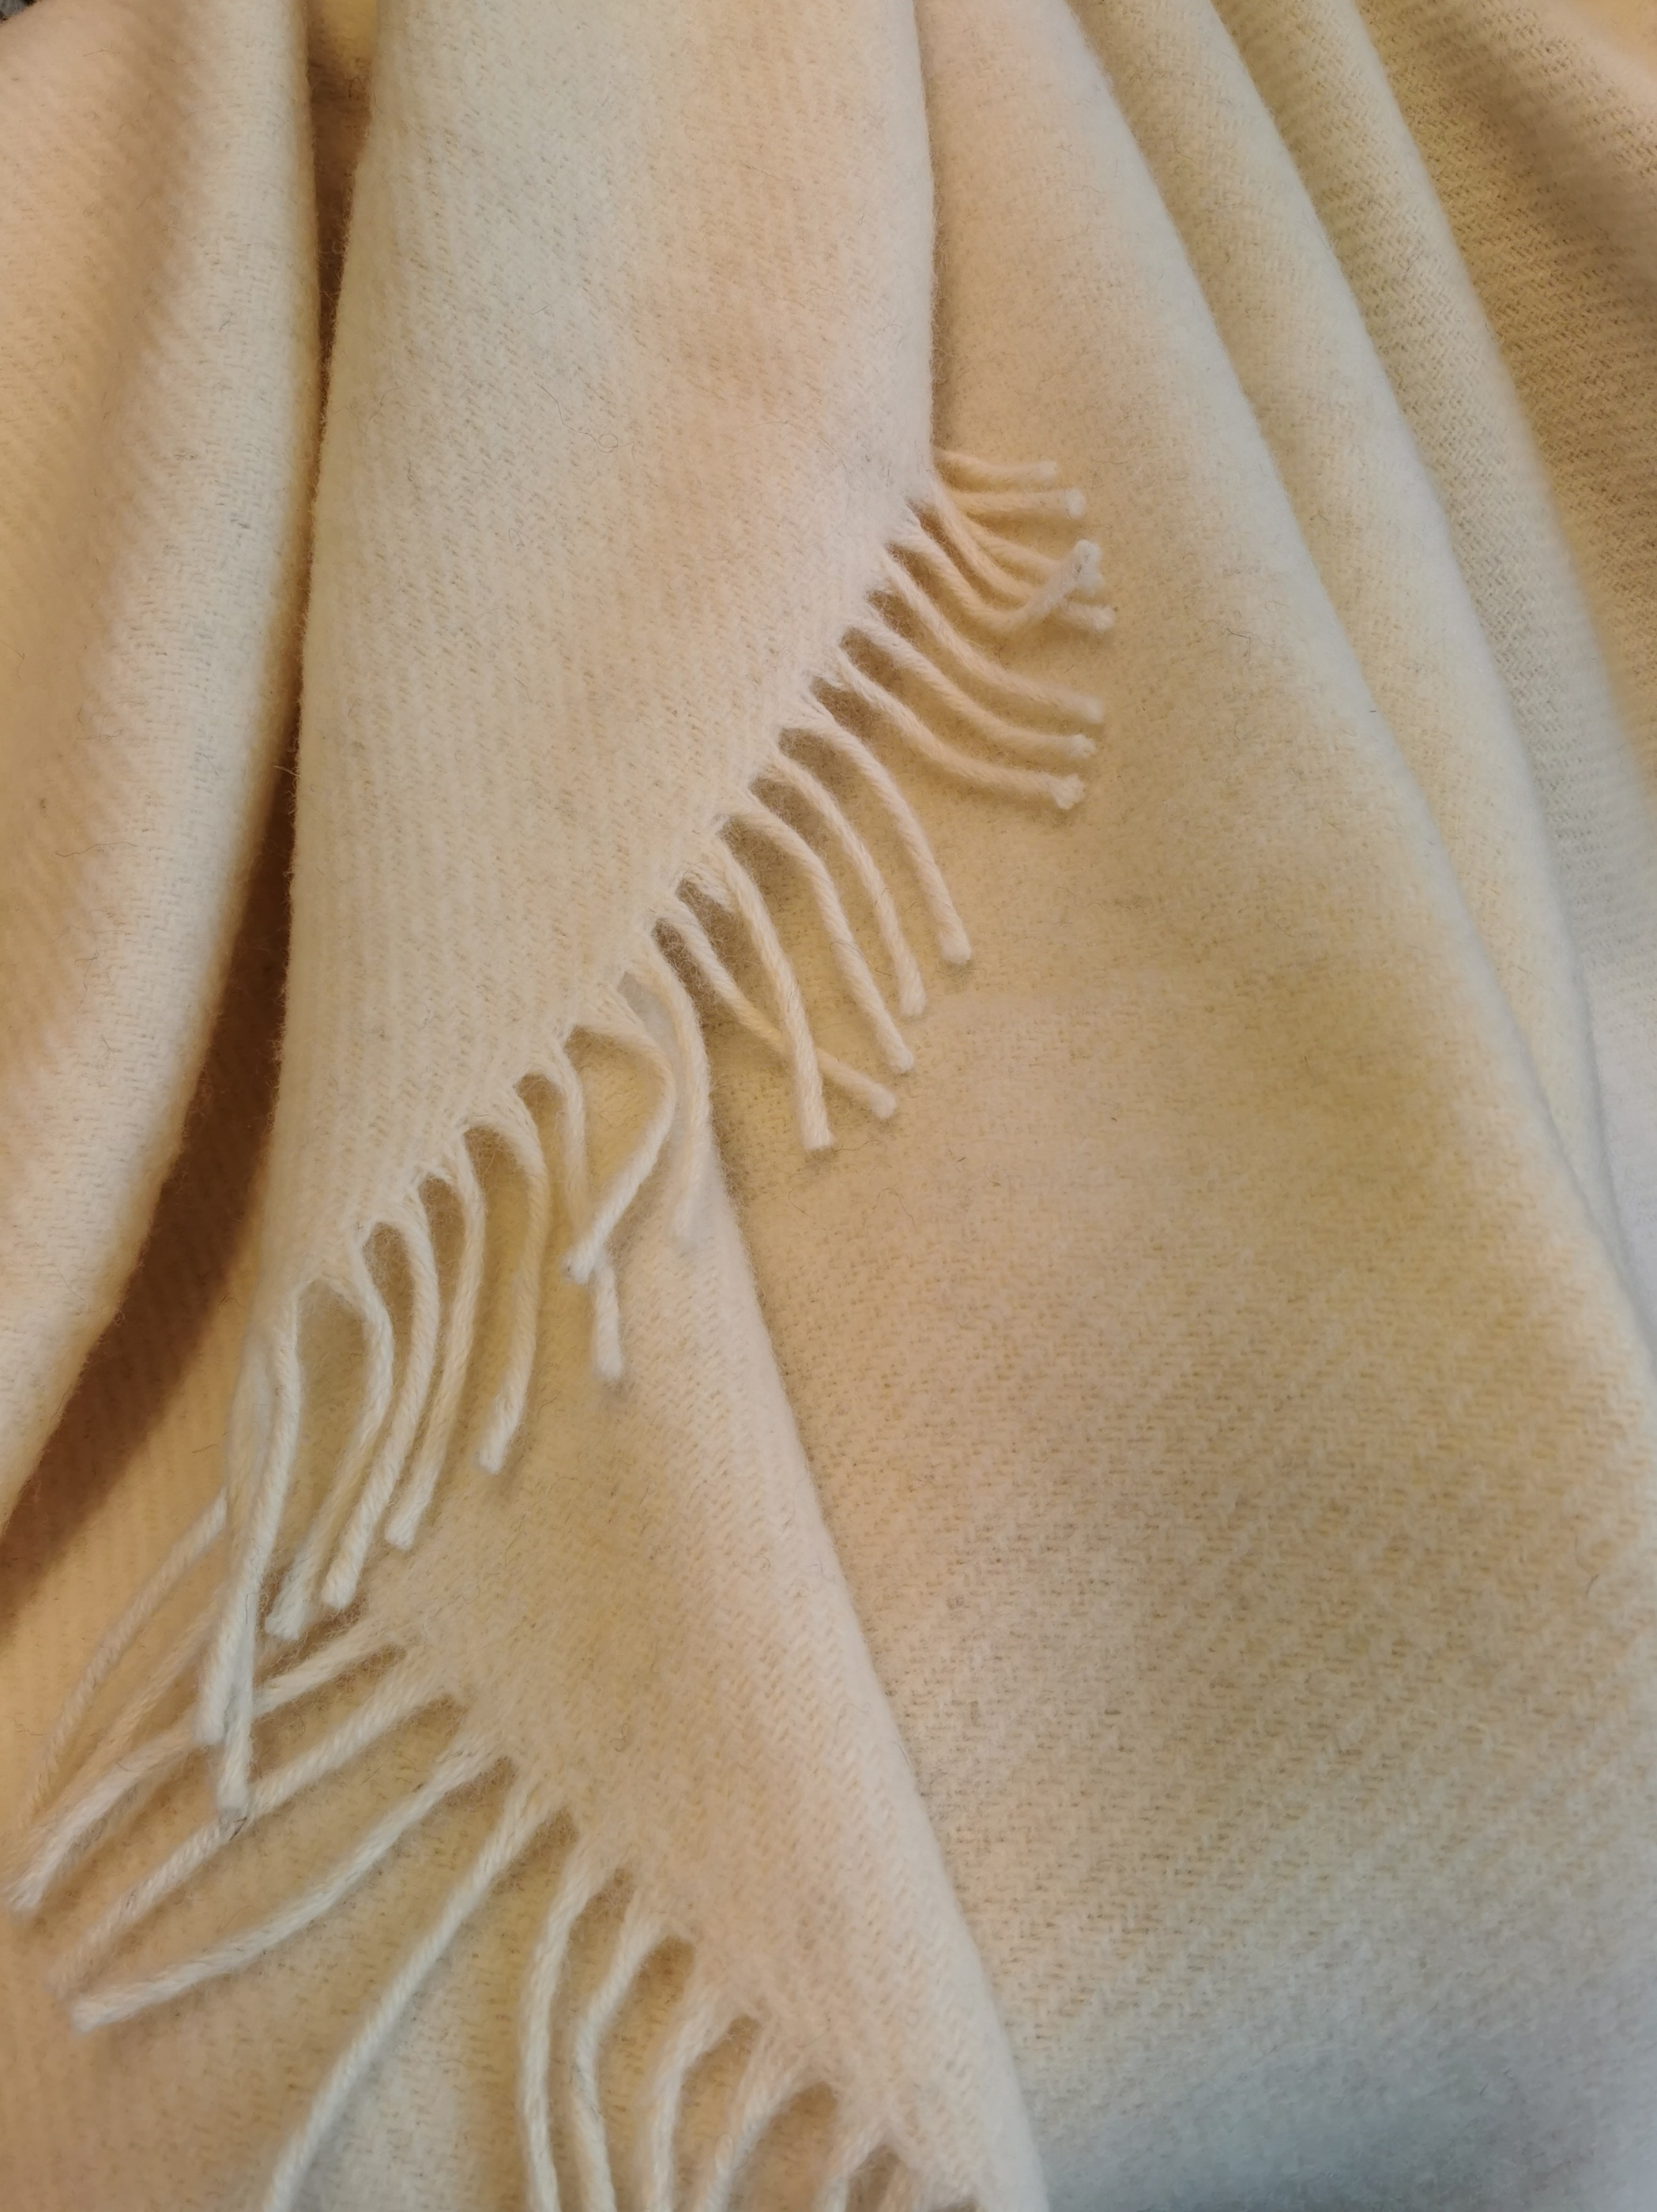 Pläd Gotland natural white, woven wool throw Klippan i Skattkistan